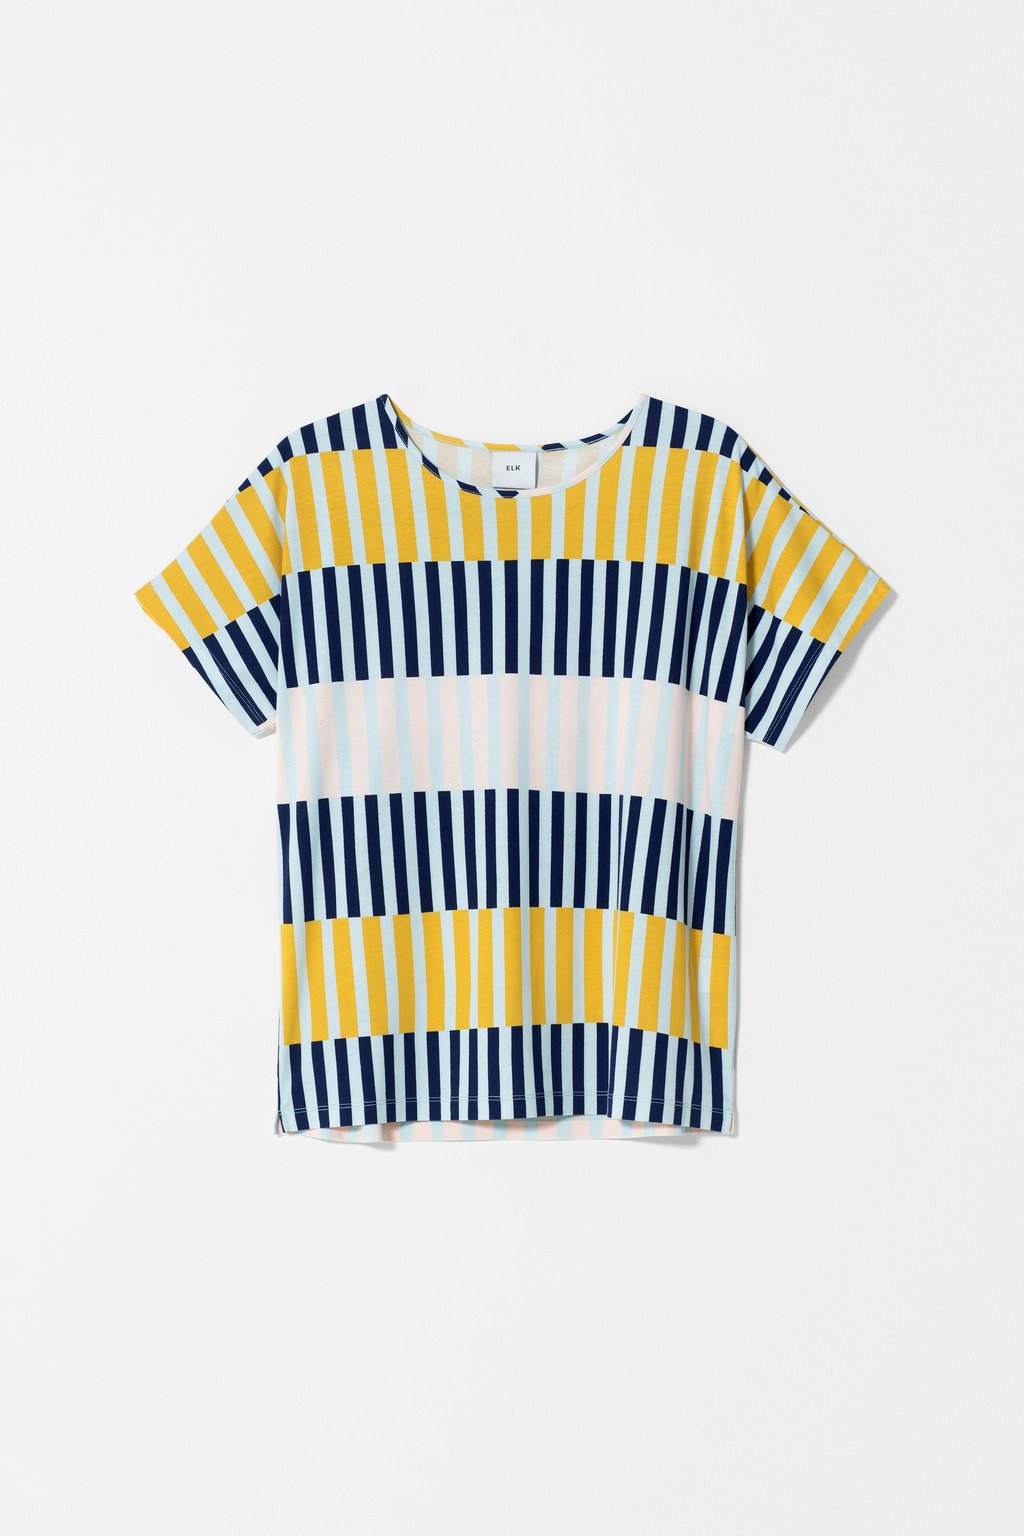 Elk Valby Stripe Top - Navy Stripe Mix